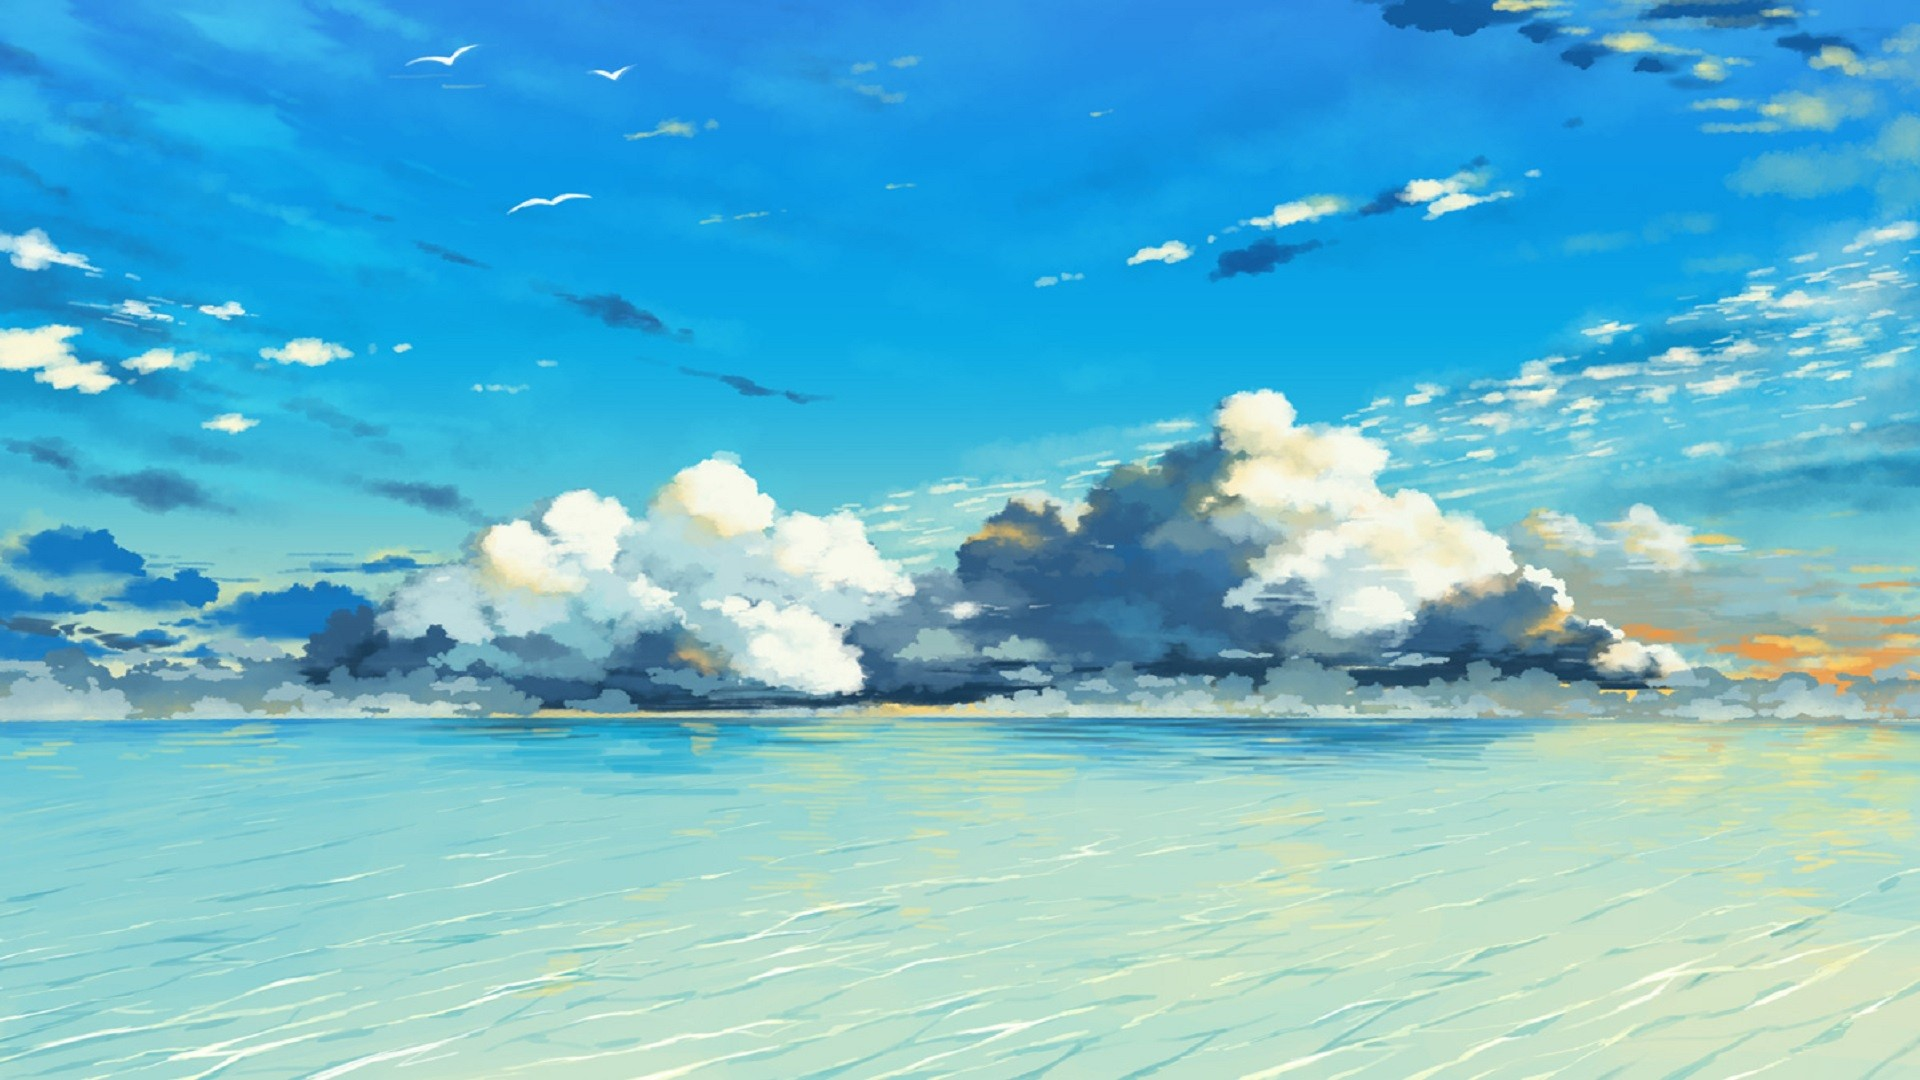 Cute Anime Watercolor Wallpapers Water Sky Clouds Painting Wallpaper Art And Paintings